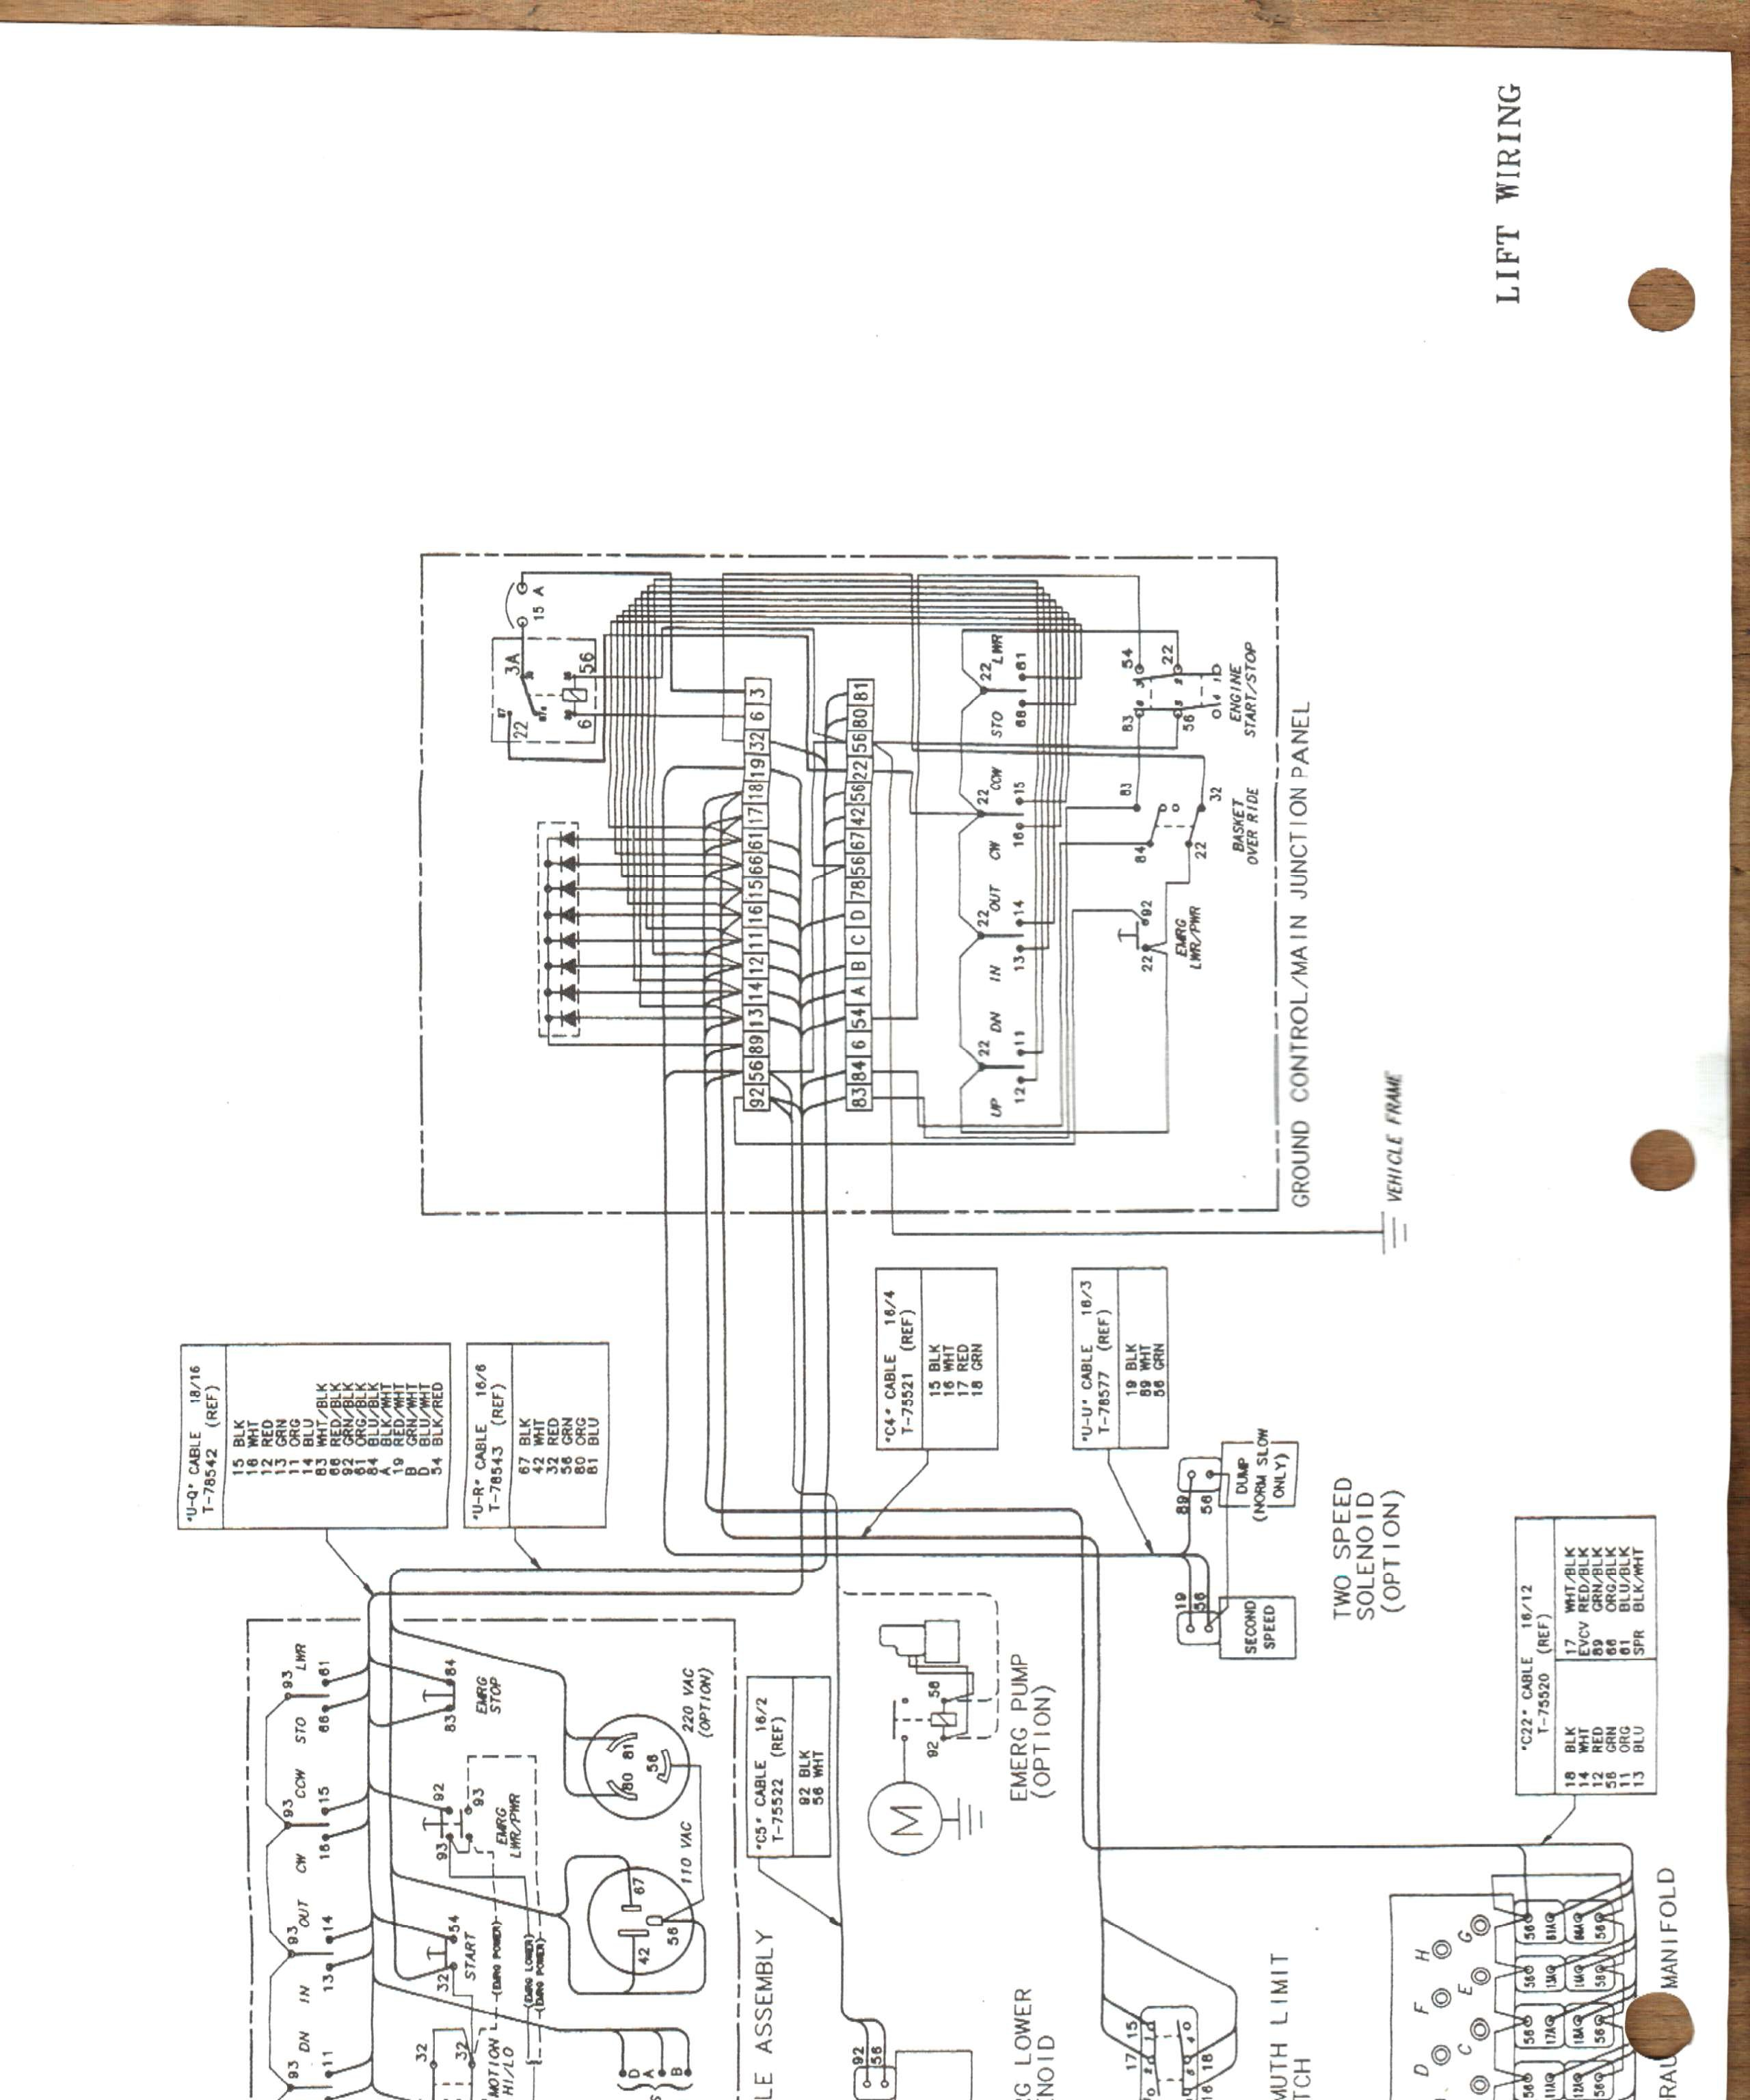 truck wiring diagram i need a wiring schematic for a 28 ft telsta bucket truck